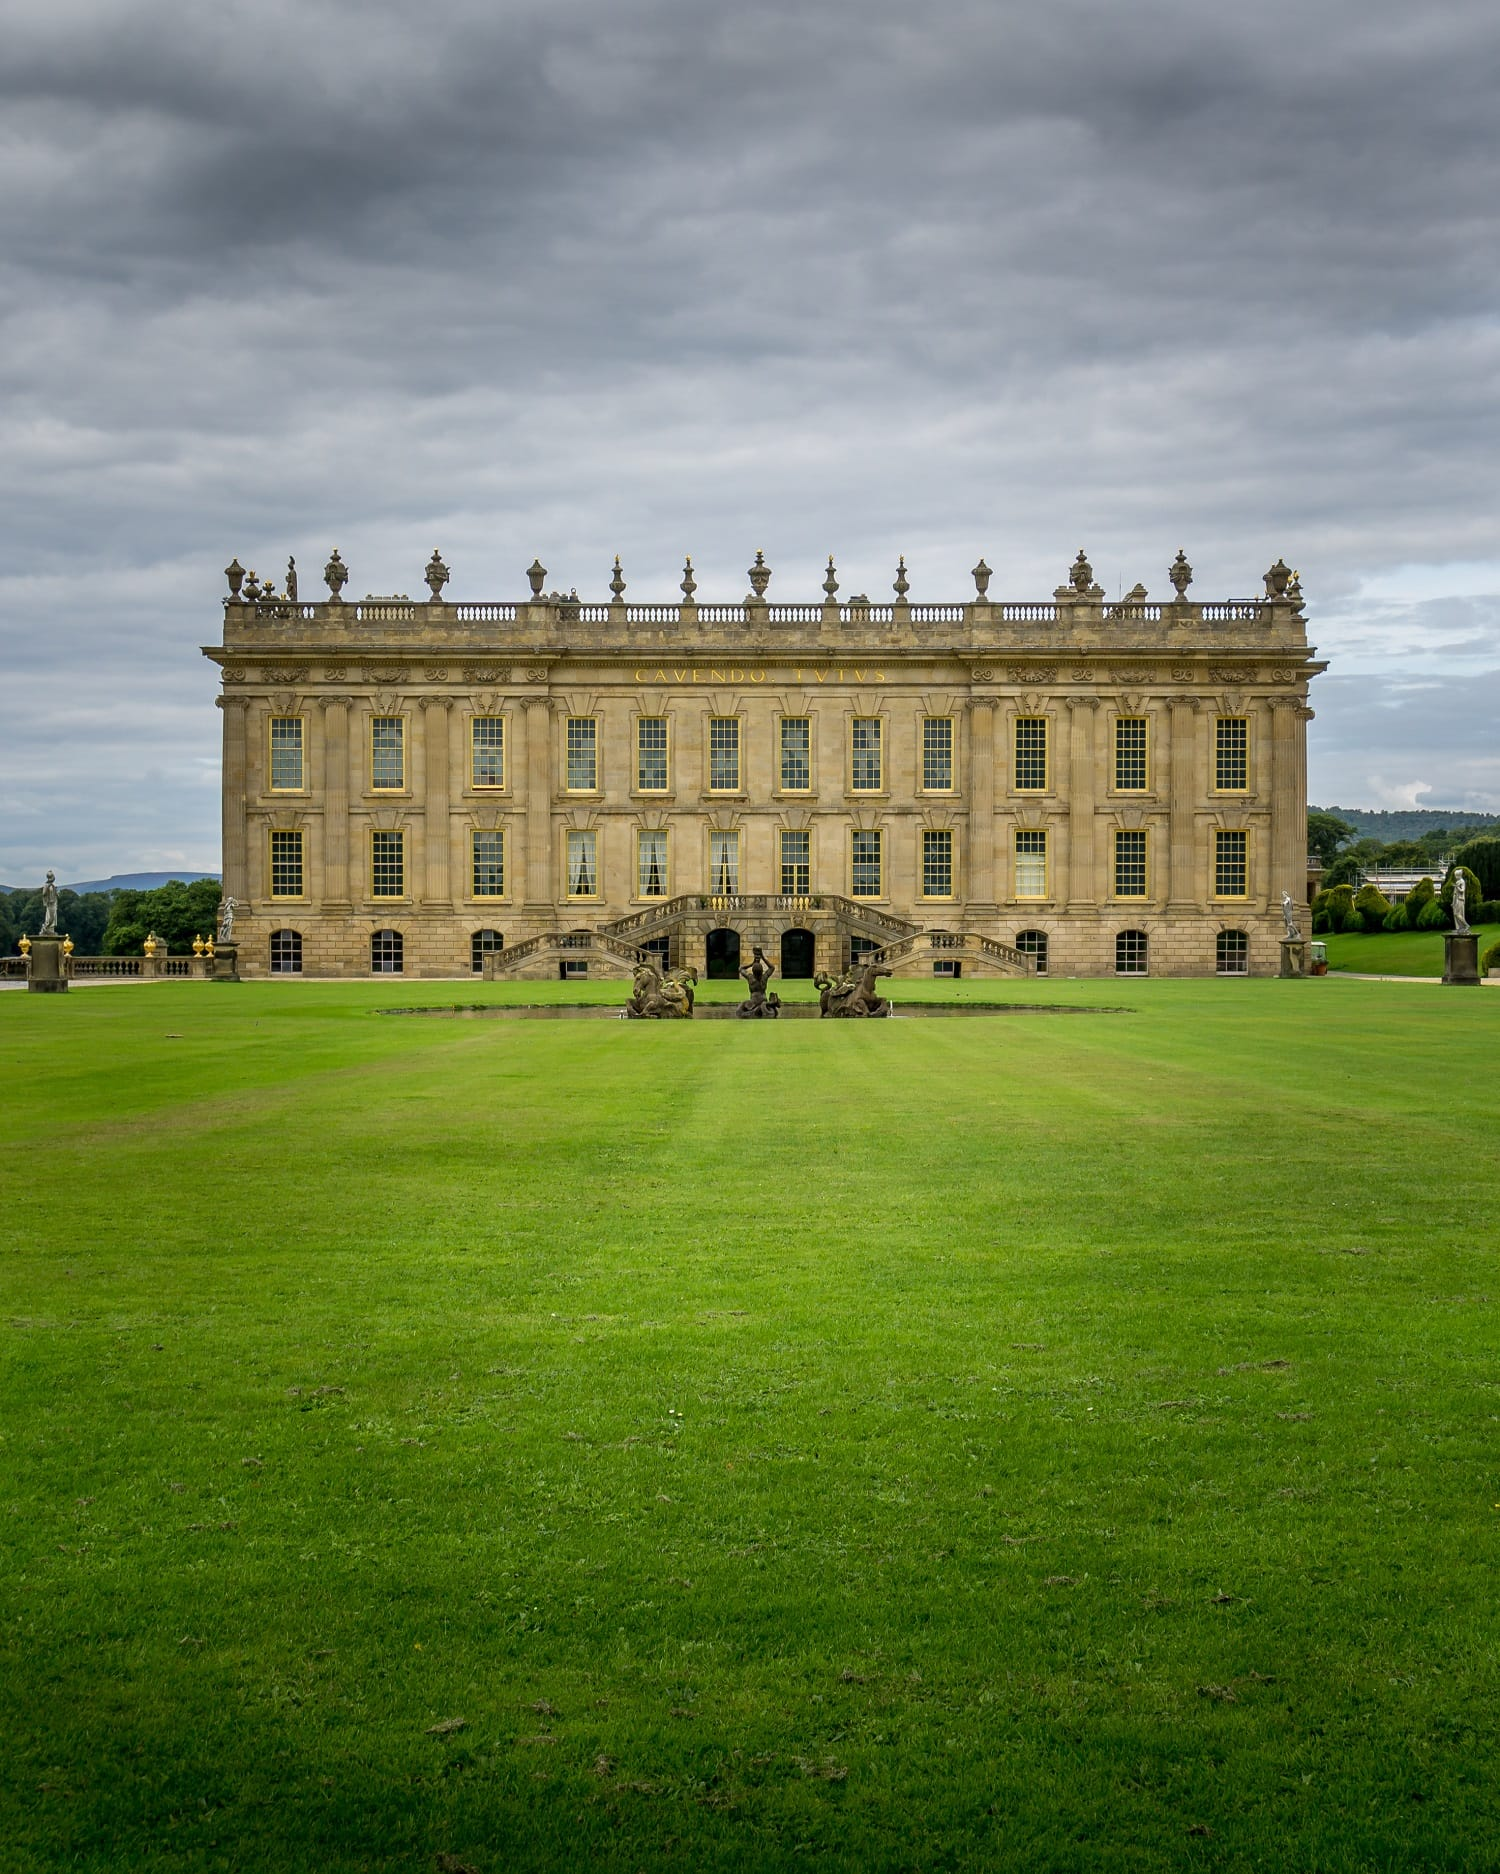 view of Chatsworth House from the Gardens